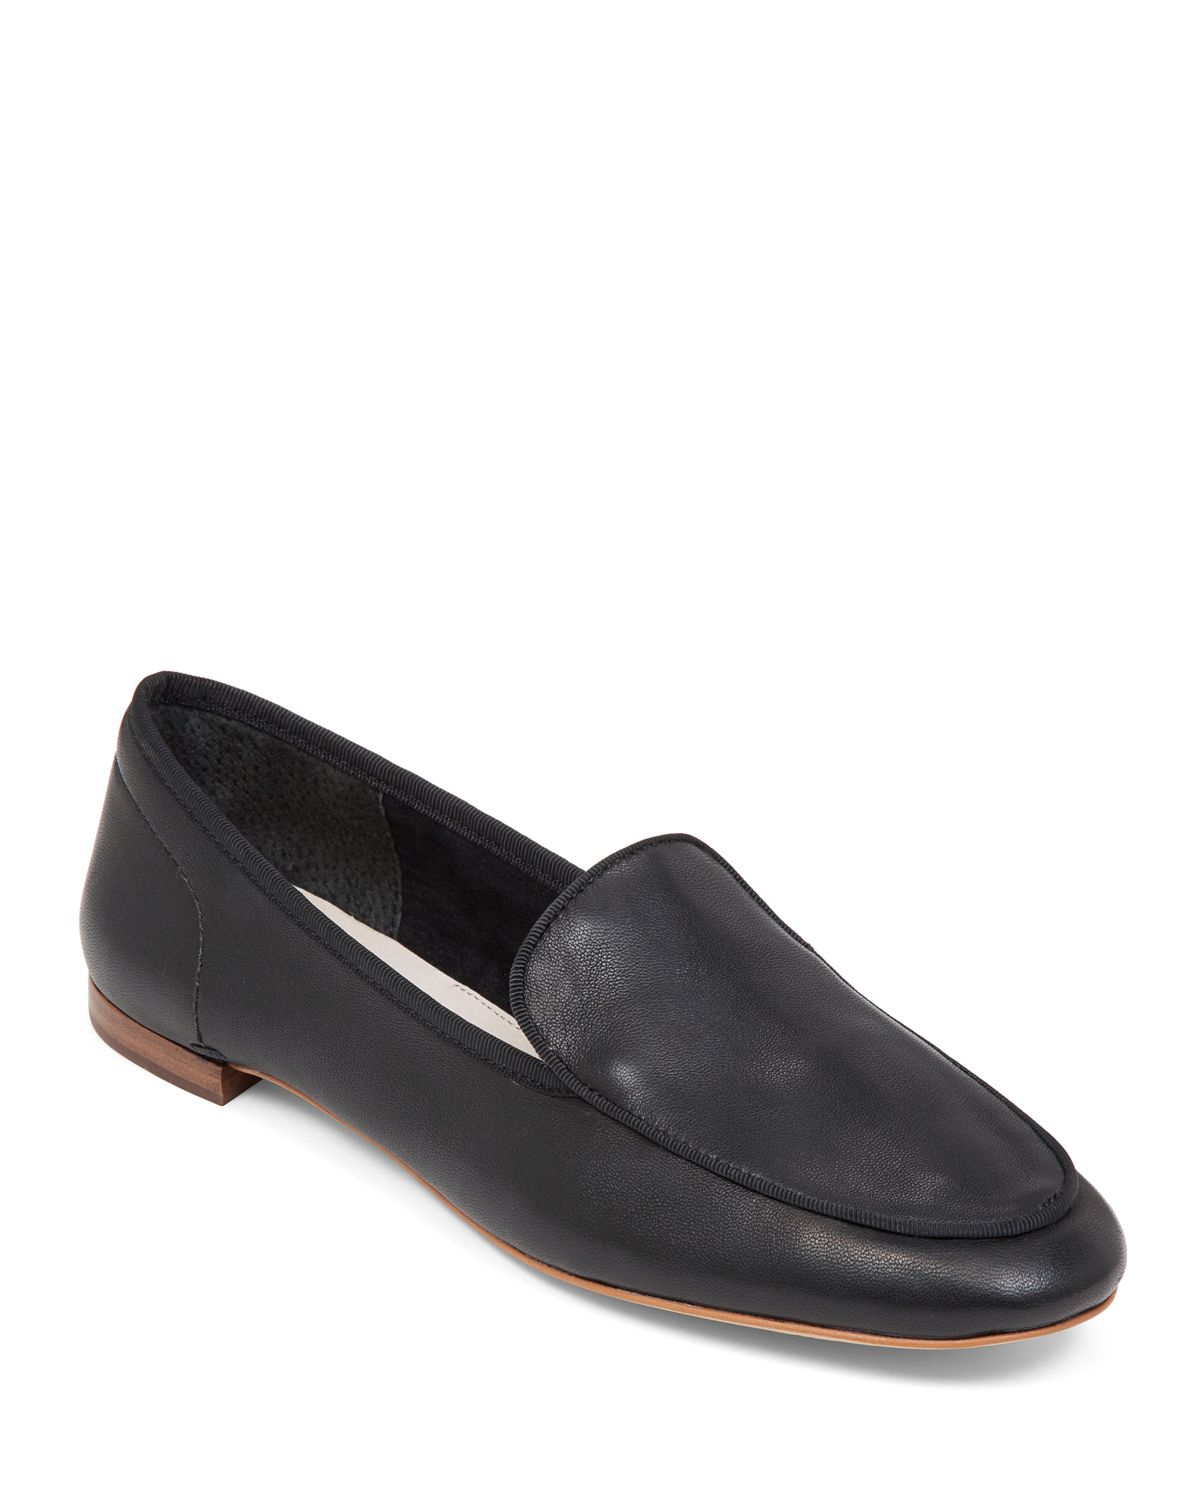 Free shipping on women's flats at thritingetqay.cf Shop ballet flats, loafer flats, mule flats and black flats from the best brands including Tory Burch, TOMS, .